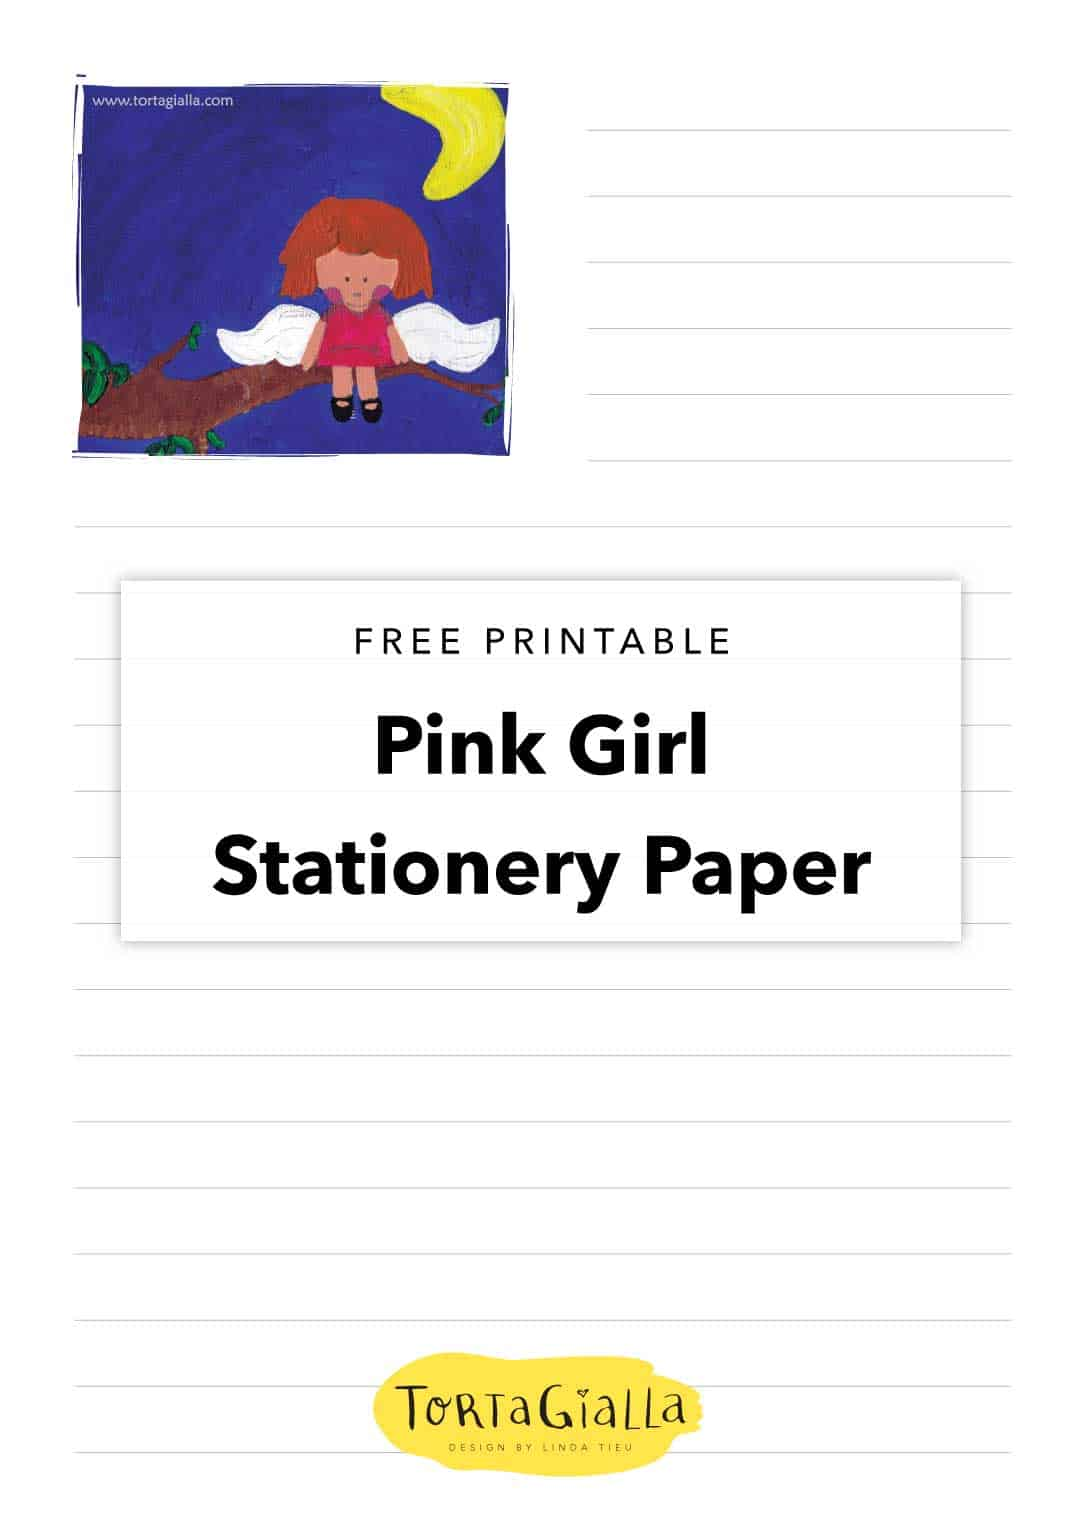 free printable pink girl stationery paper